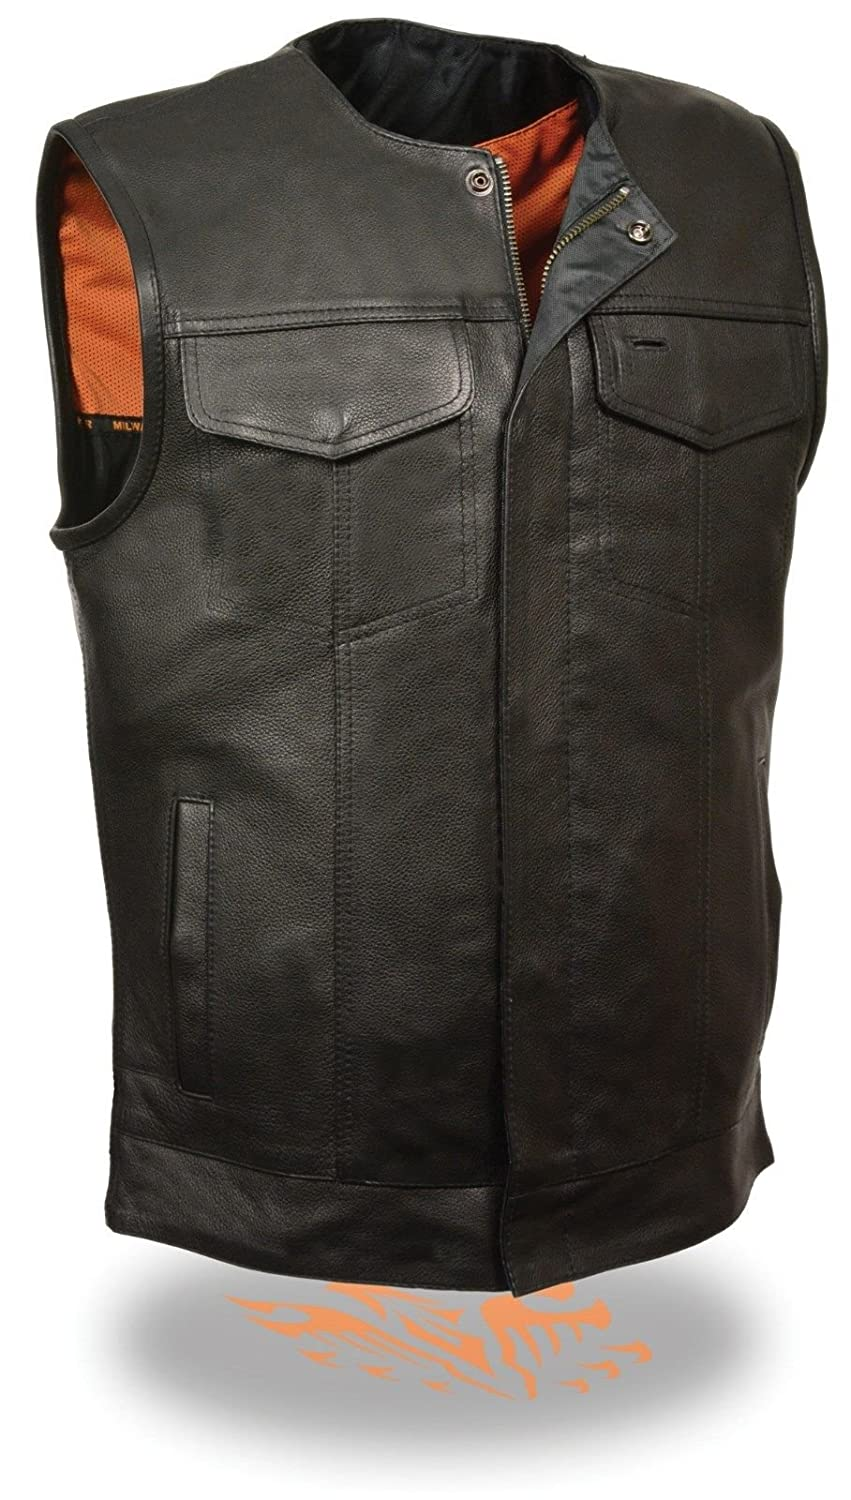 MEN'S MOTORCYCLE SON OF ANARCHY LEATHER COLLARLESS VEST 2 GUN POCKETS W/ZIPPER (Regular)